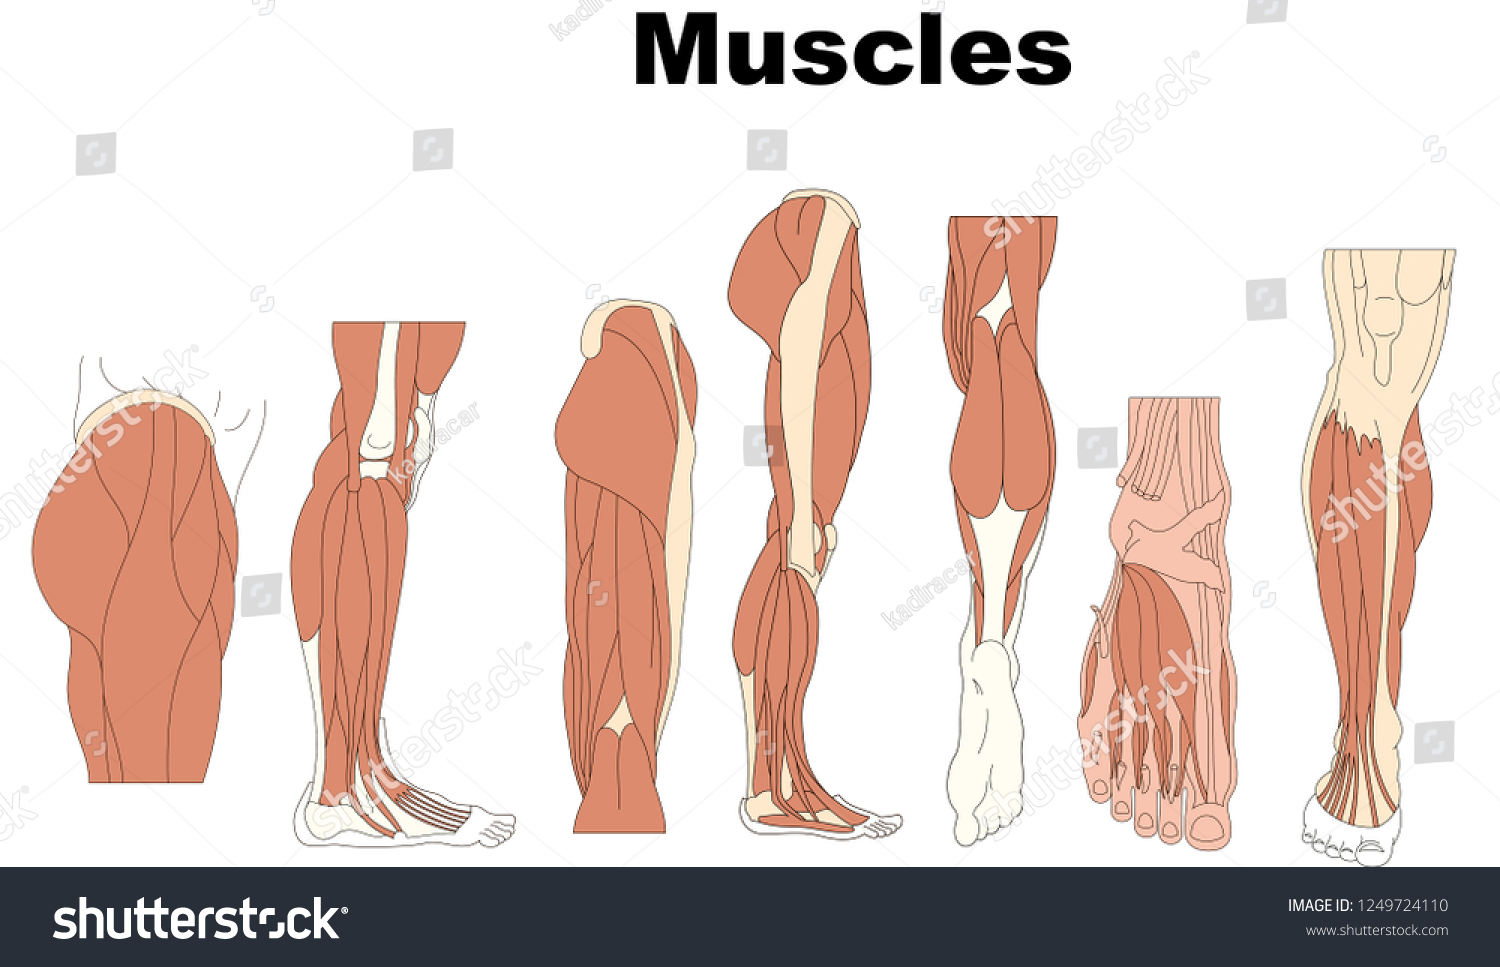 hight resolution of muscles medical education chart of biology for human body organ system diagram vector illustration